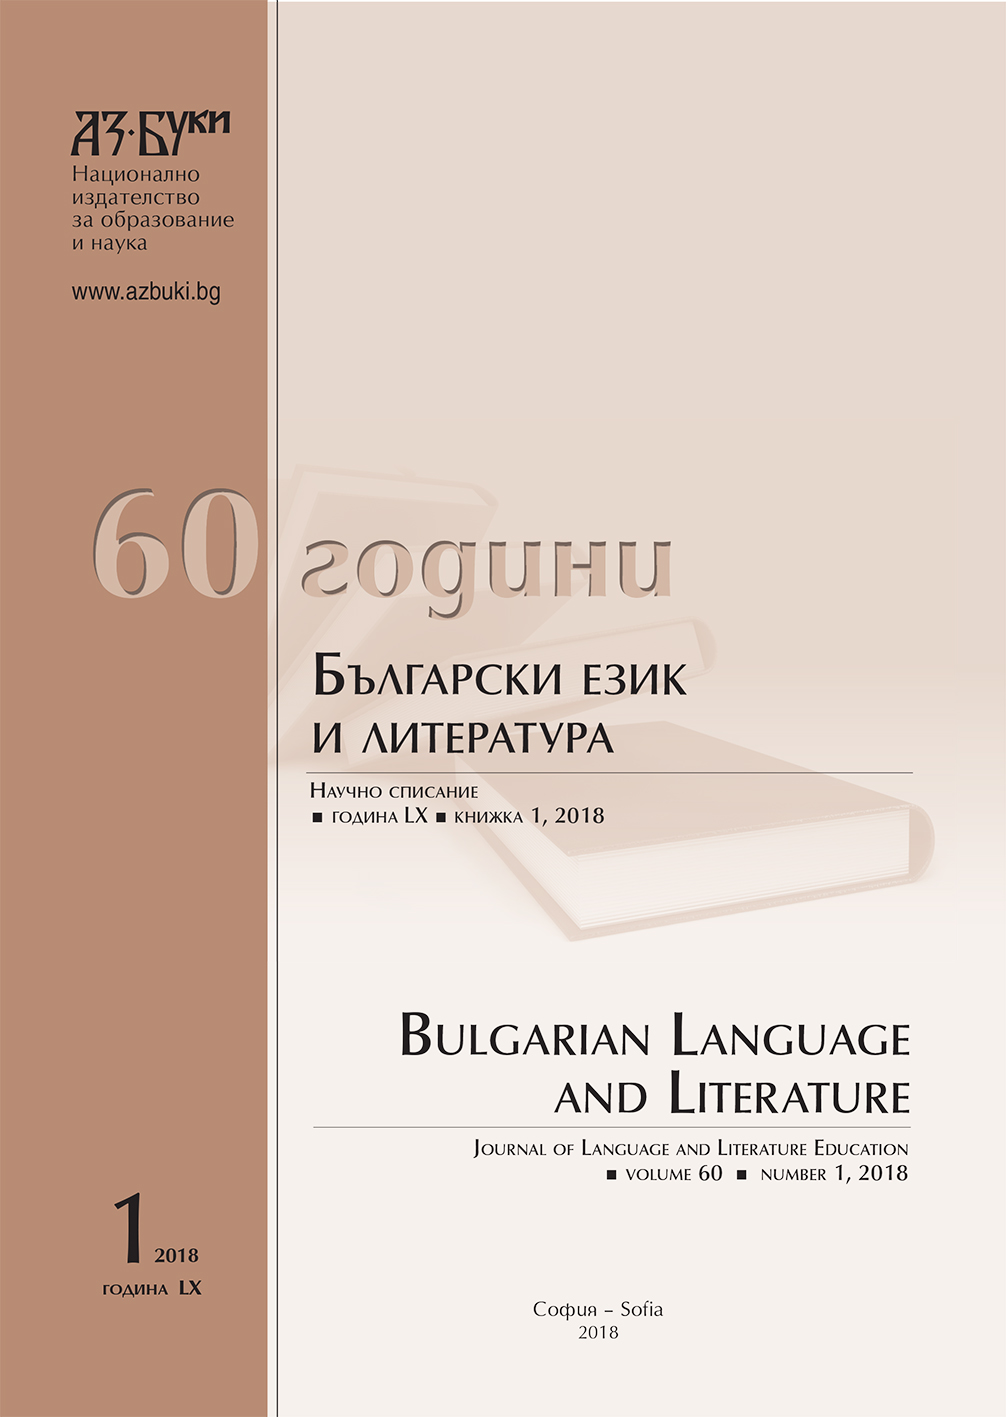 Technology to Increase the Recipetive and Productive Skills through Portfolio and Self-assesment Cards in the High School Stage of Training in Bulgarian Language Cover Image